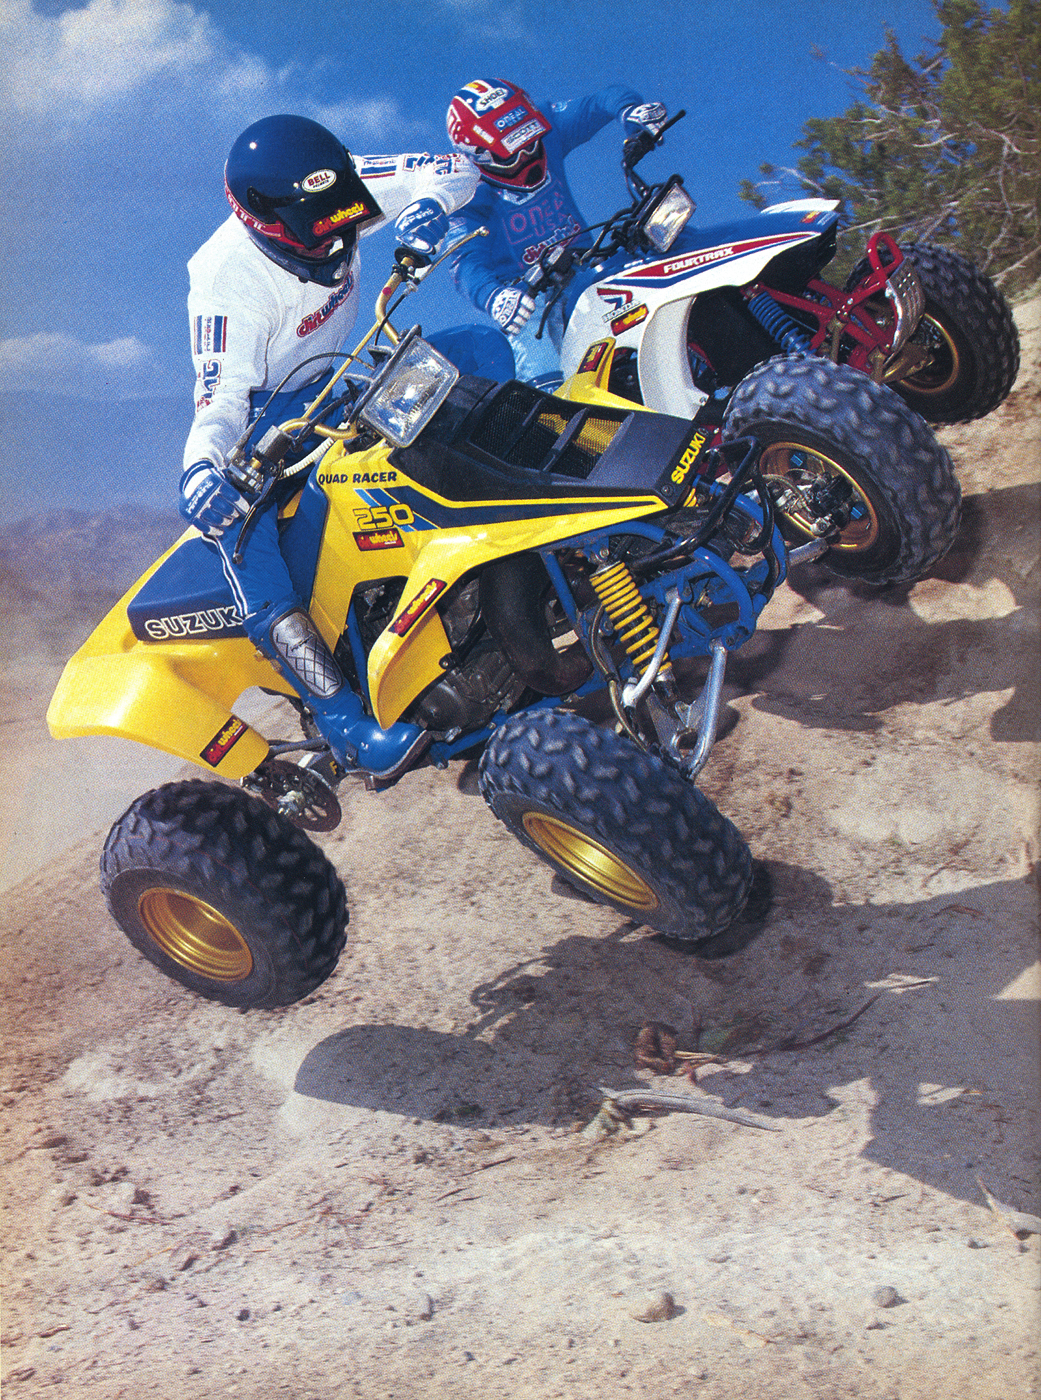 FourTrax_QuadRacer_2